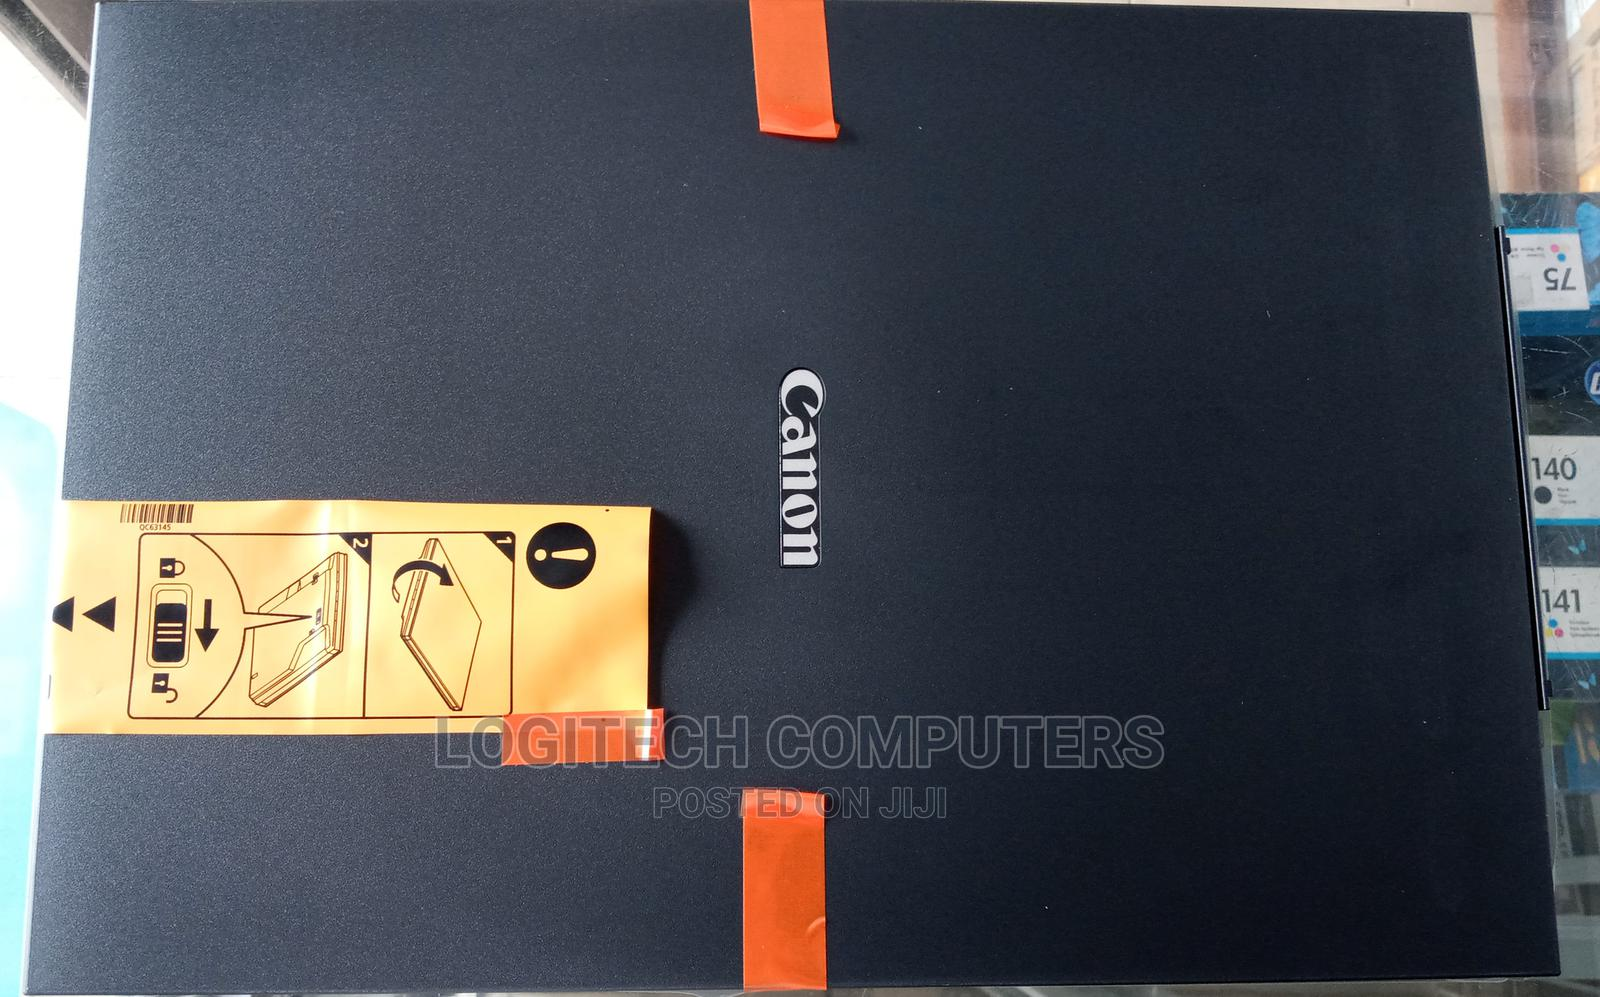 High Resolution Canon Colour Scanner | Printers & Scanners for sale in Warri, Delta State, Nigeria